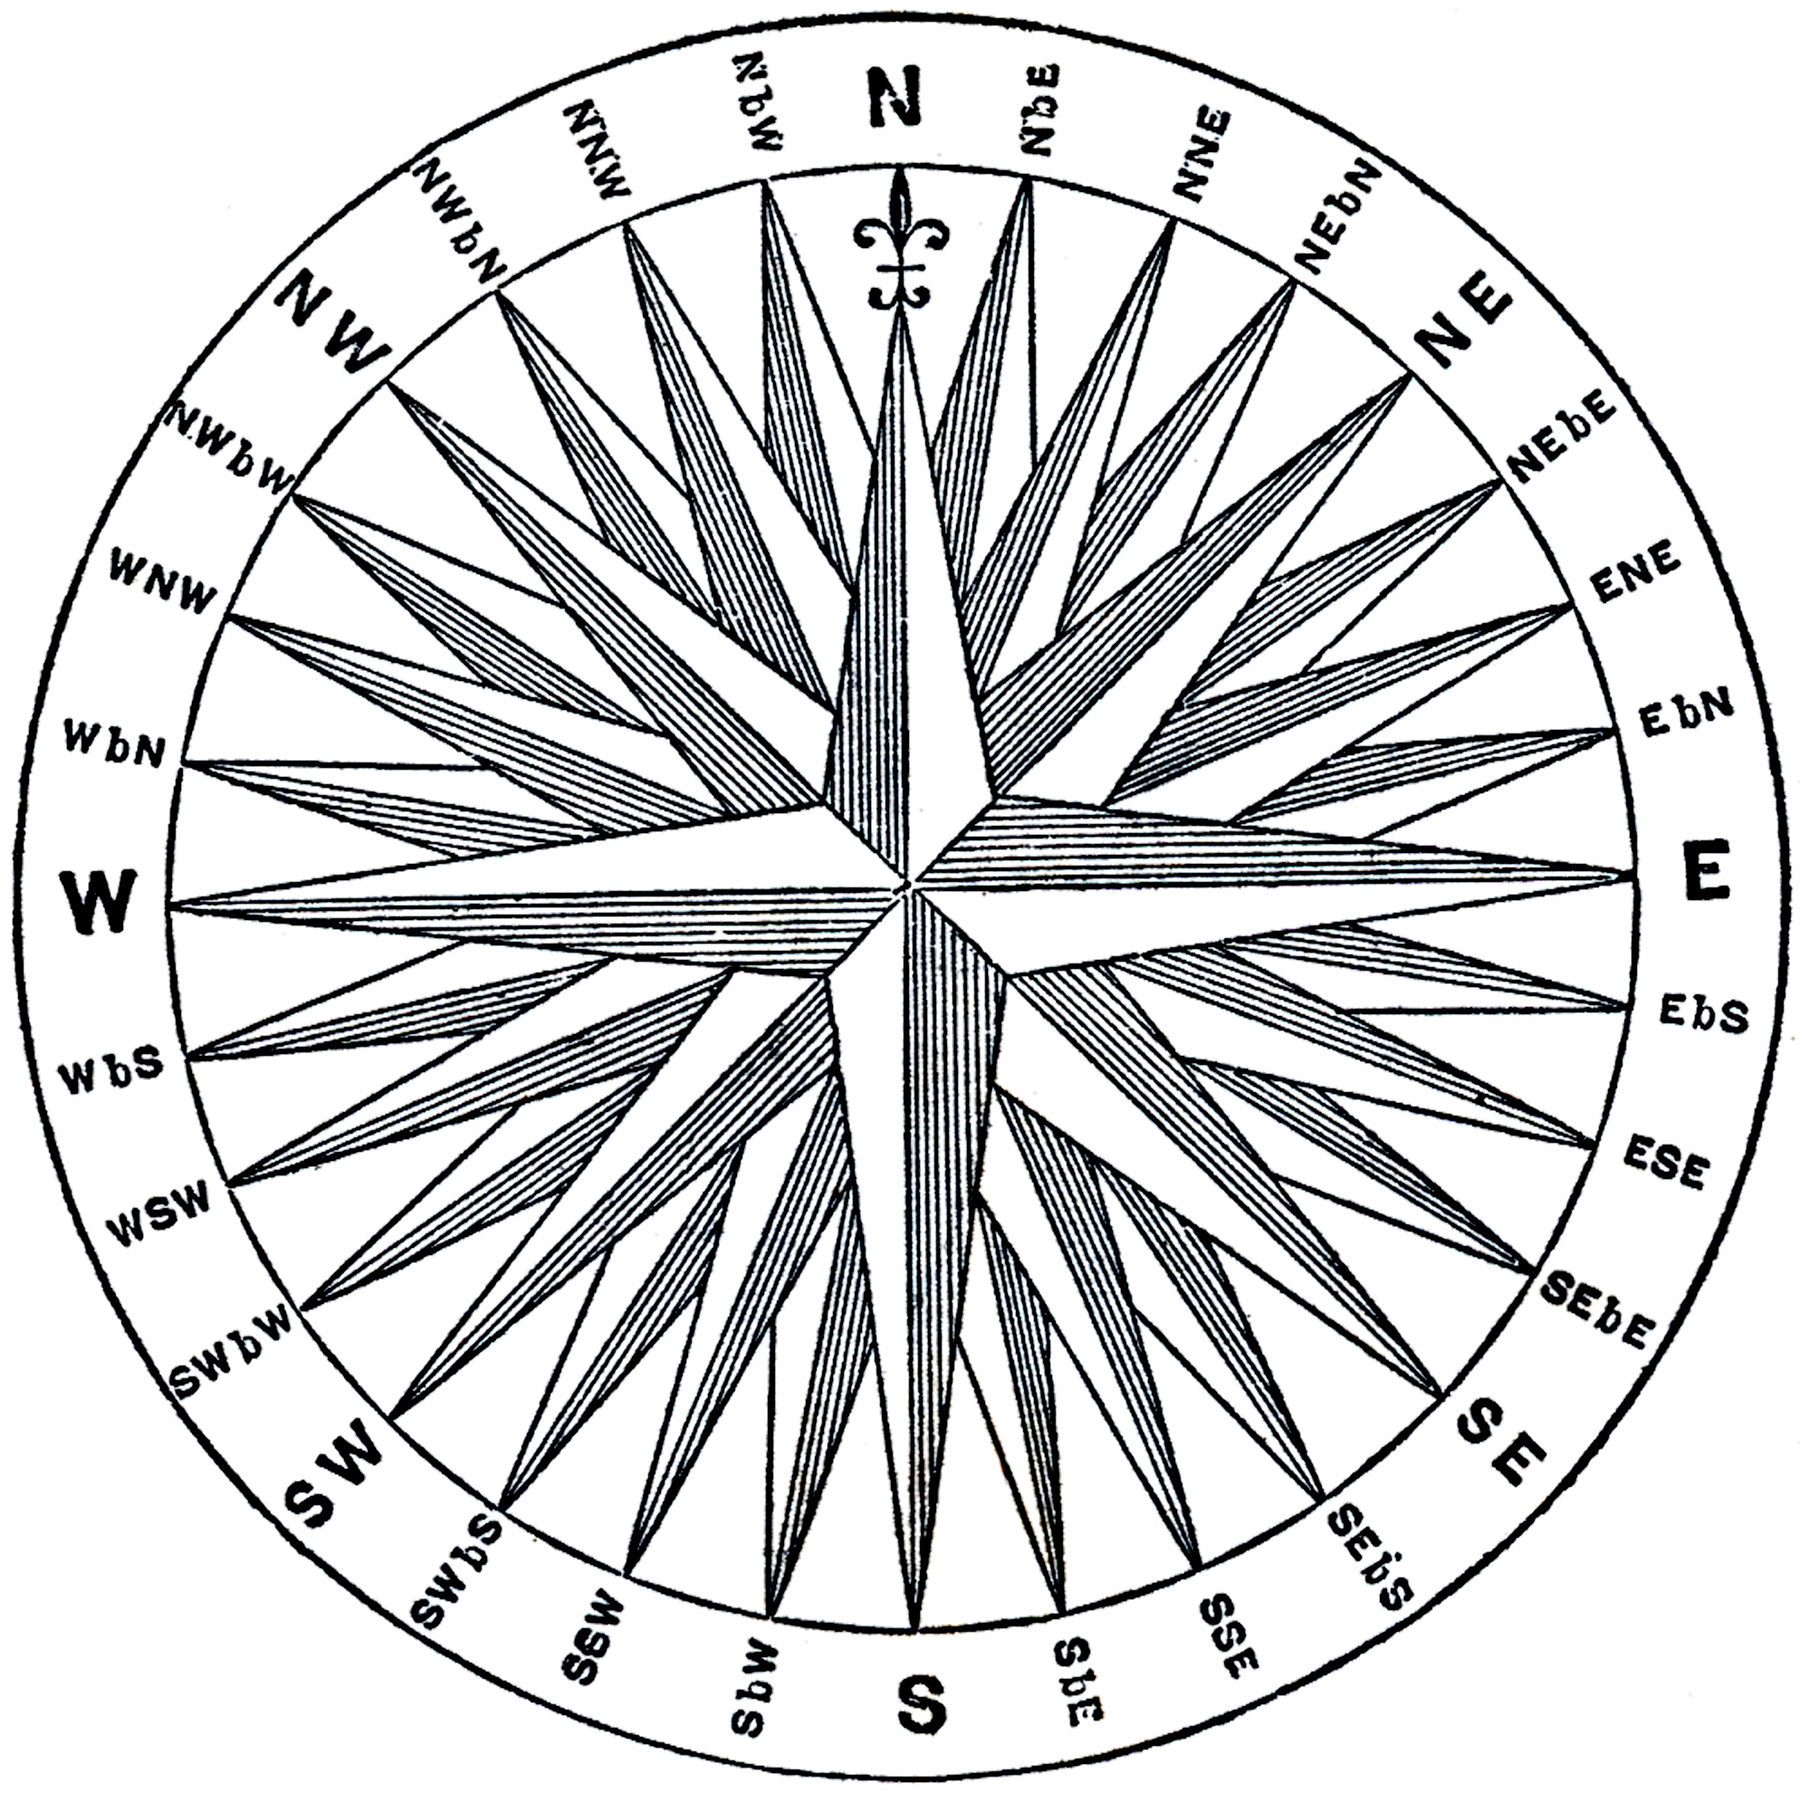 graphic about Printable Compass Rose named Classic Comp Rose Graphic - The Graphics Fairy